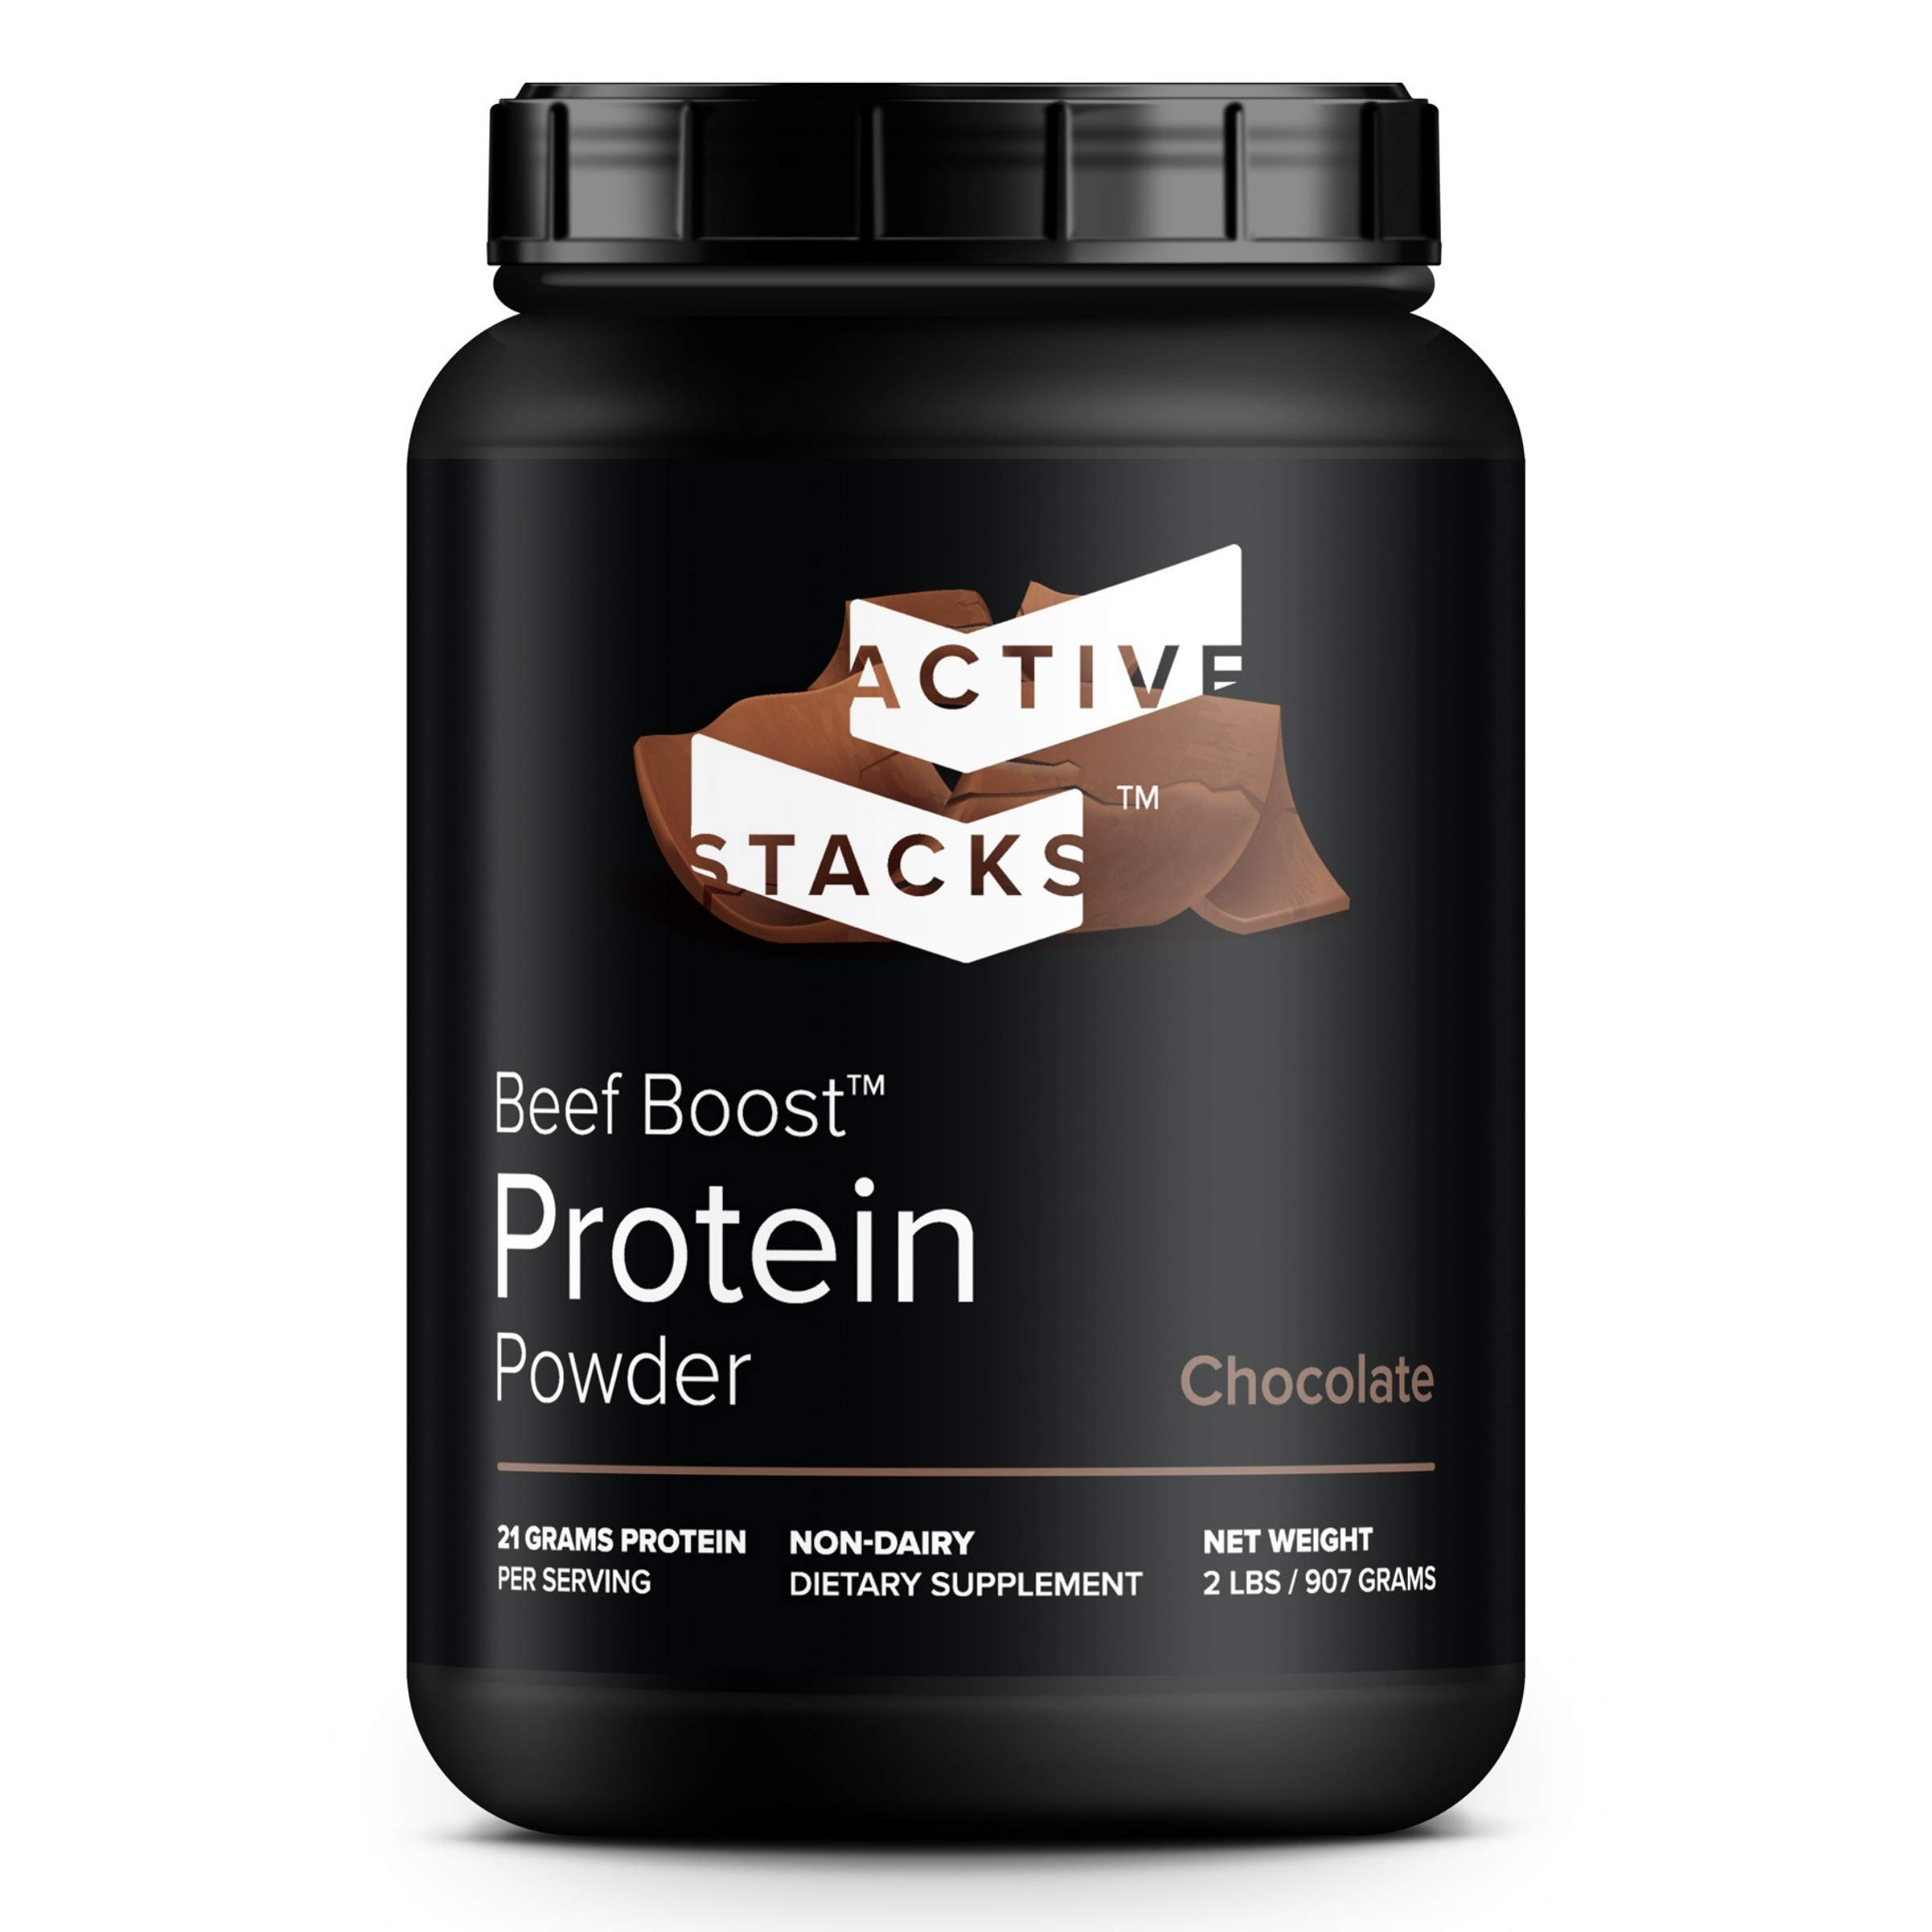 Beef Protein Powder, Chocolate - Dairy Free with Natural Collagen for Keto, Paleo, Bone Broth & Low Carb Diets, 2 Pound by Active Stacks